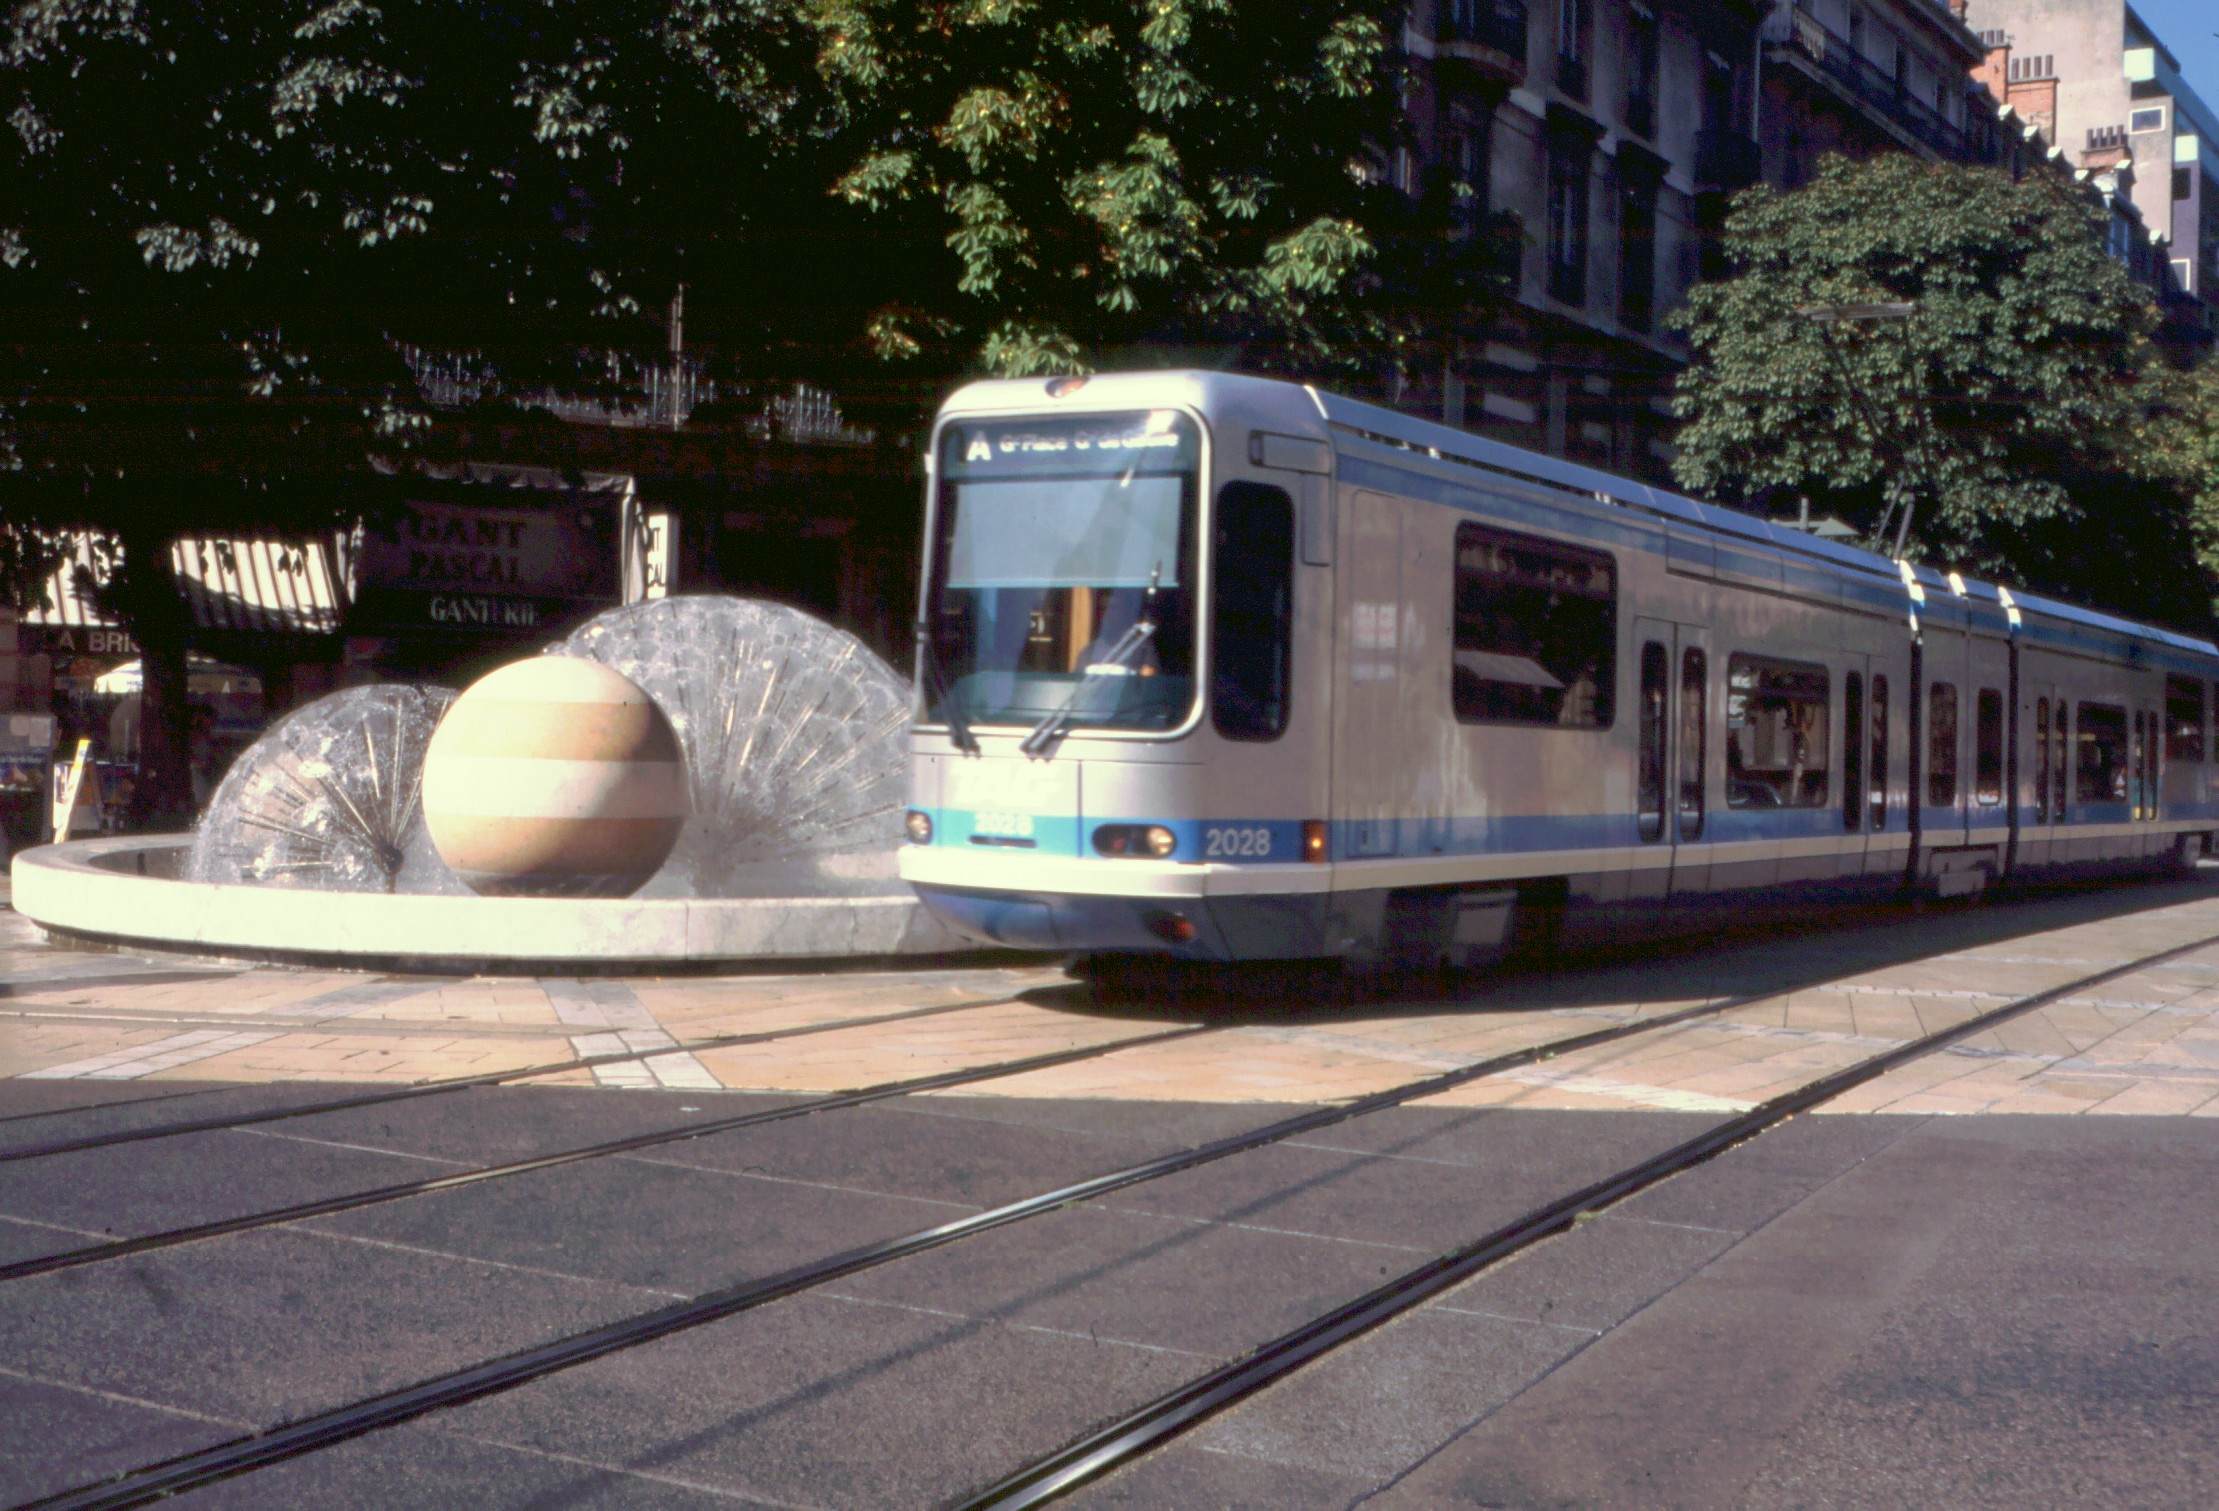 c359- tram in grenoble